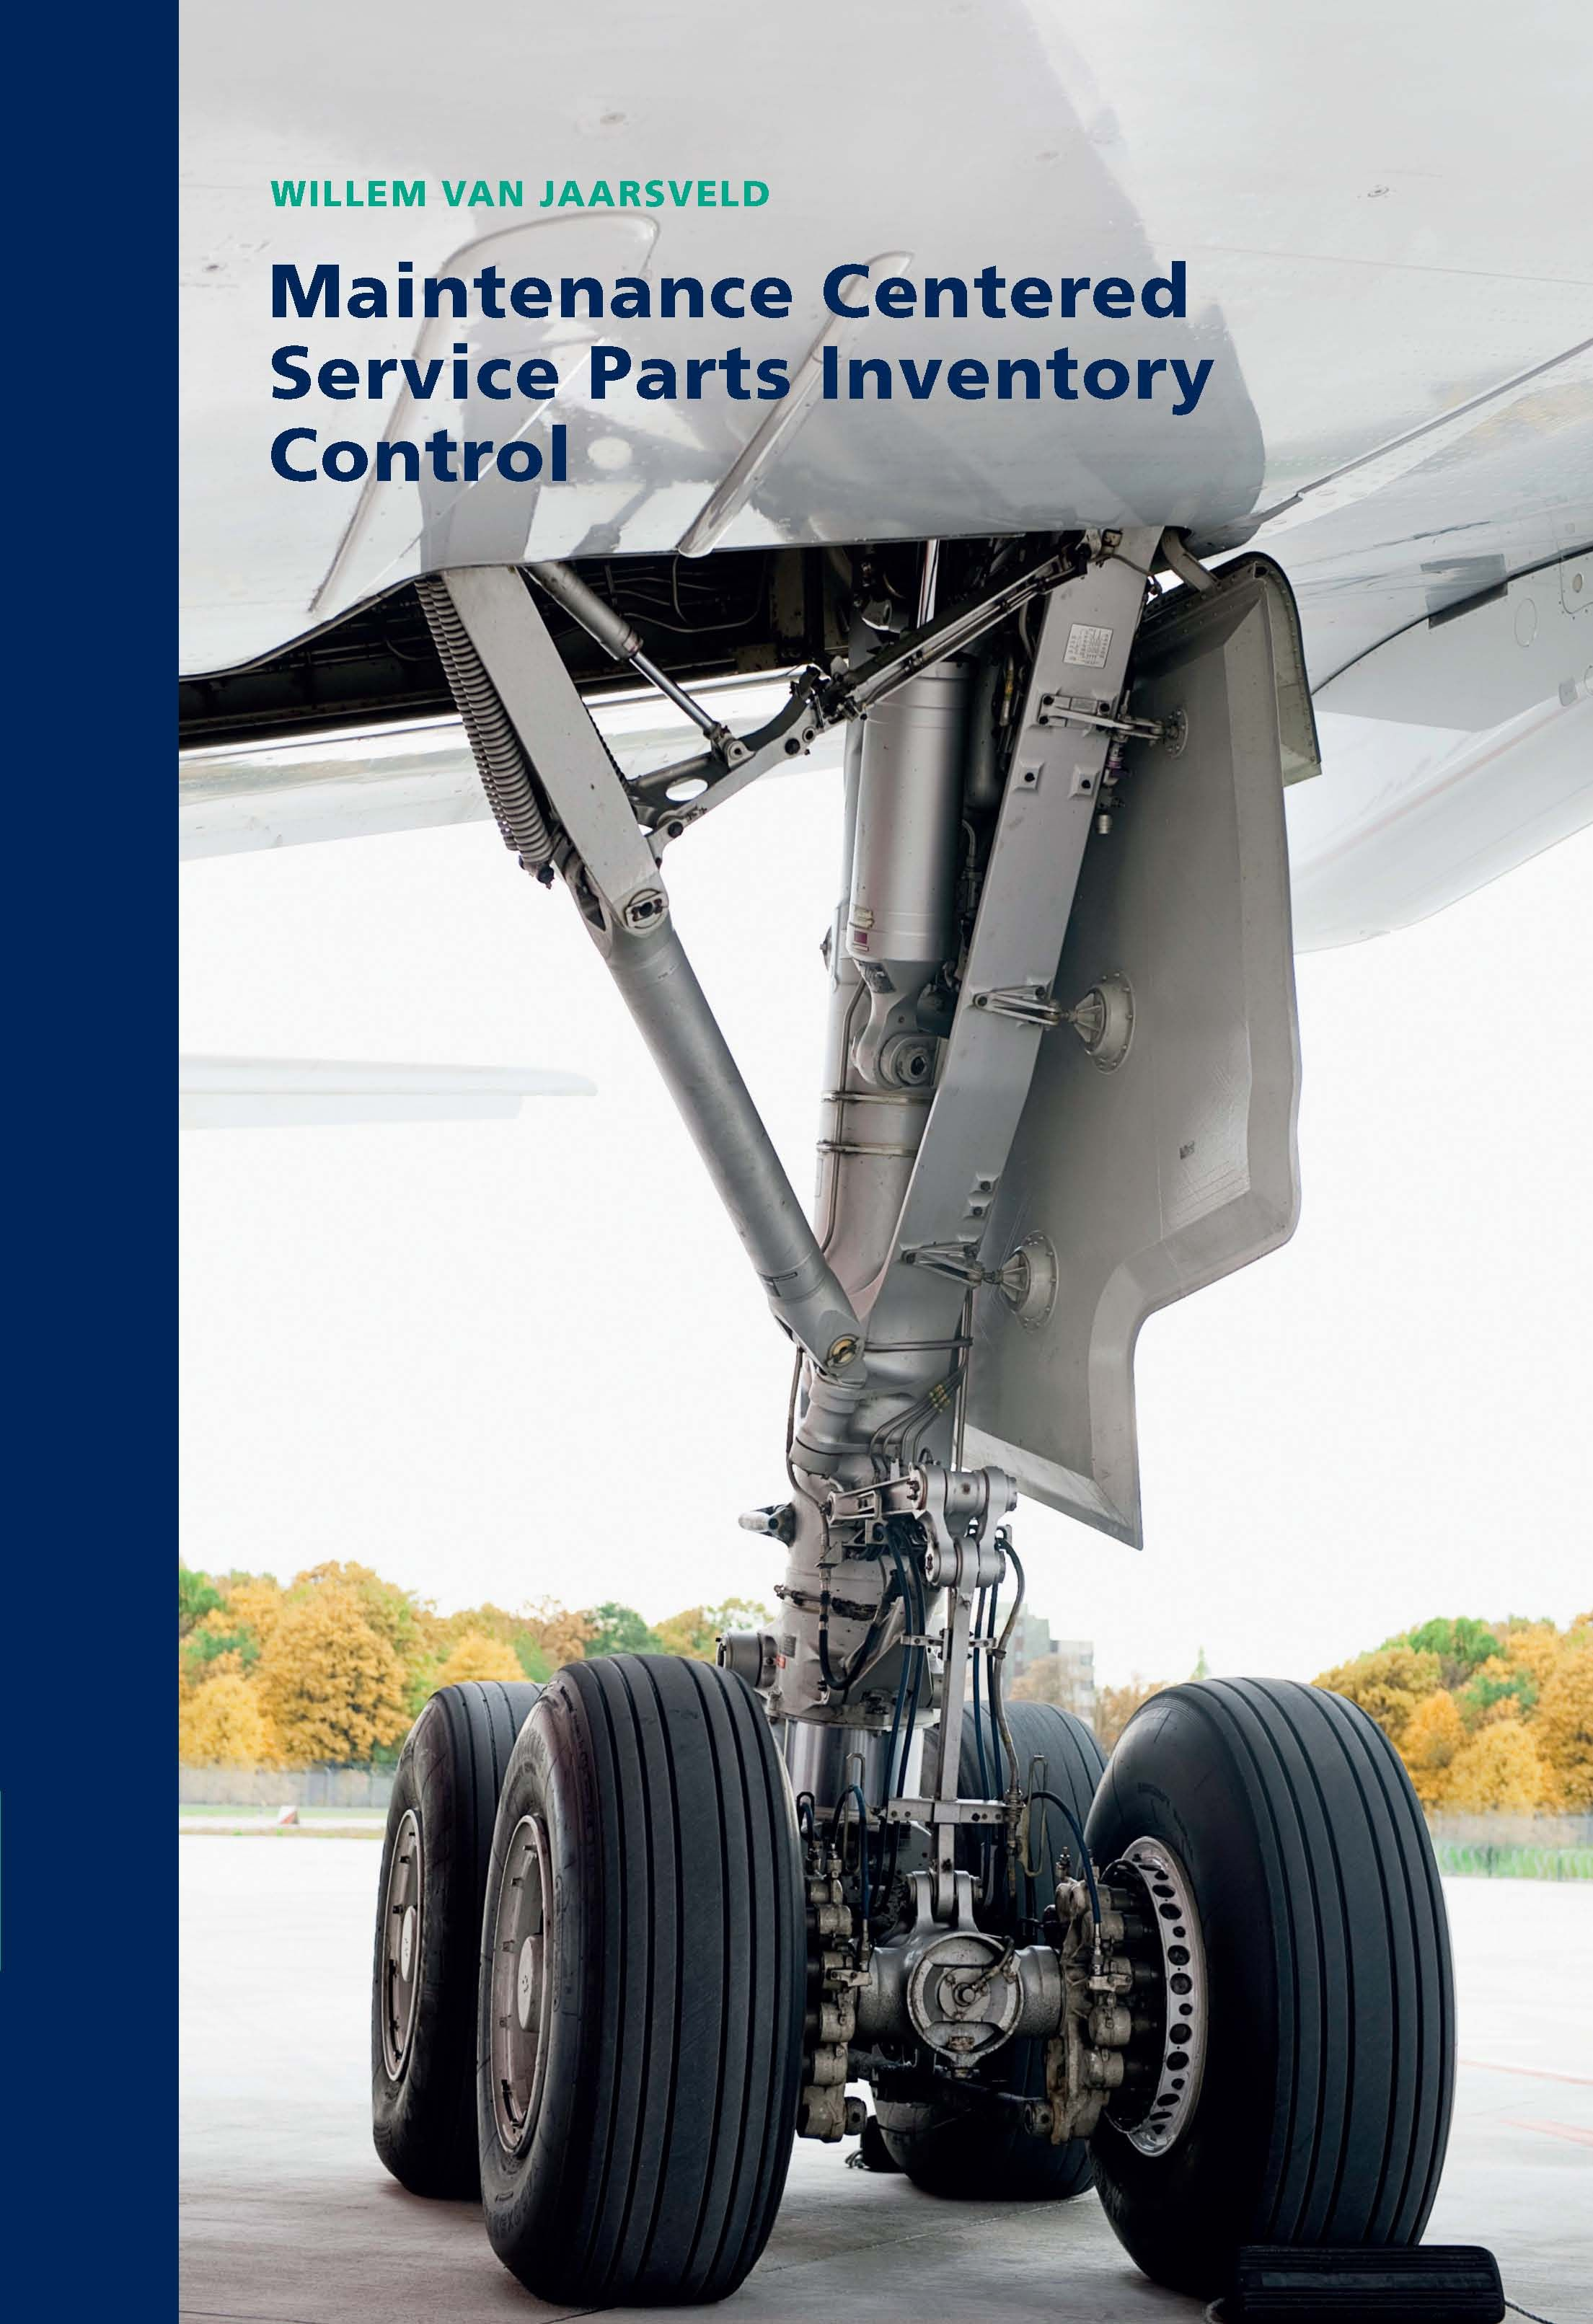 Maintenance Centered Service Parts Inventory Control